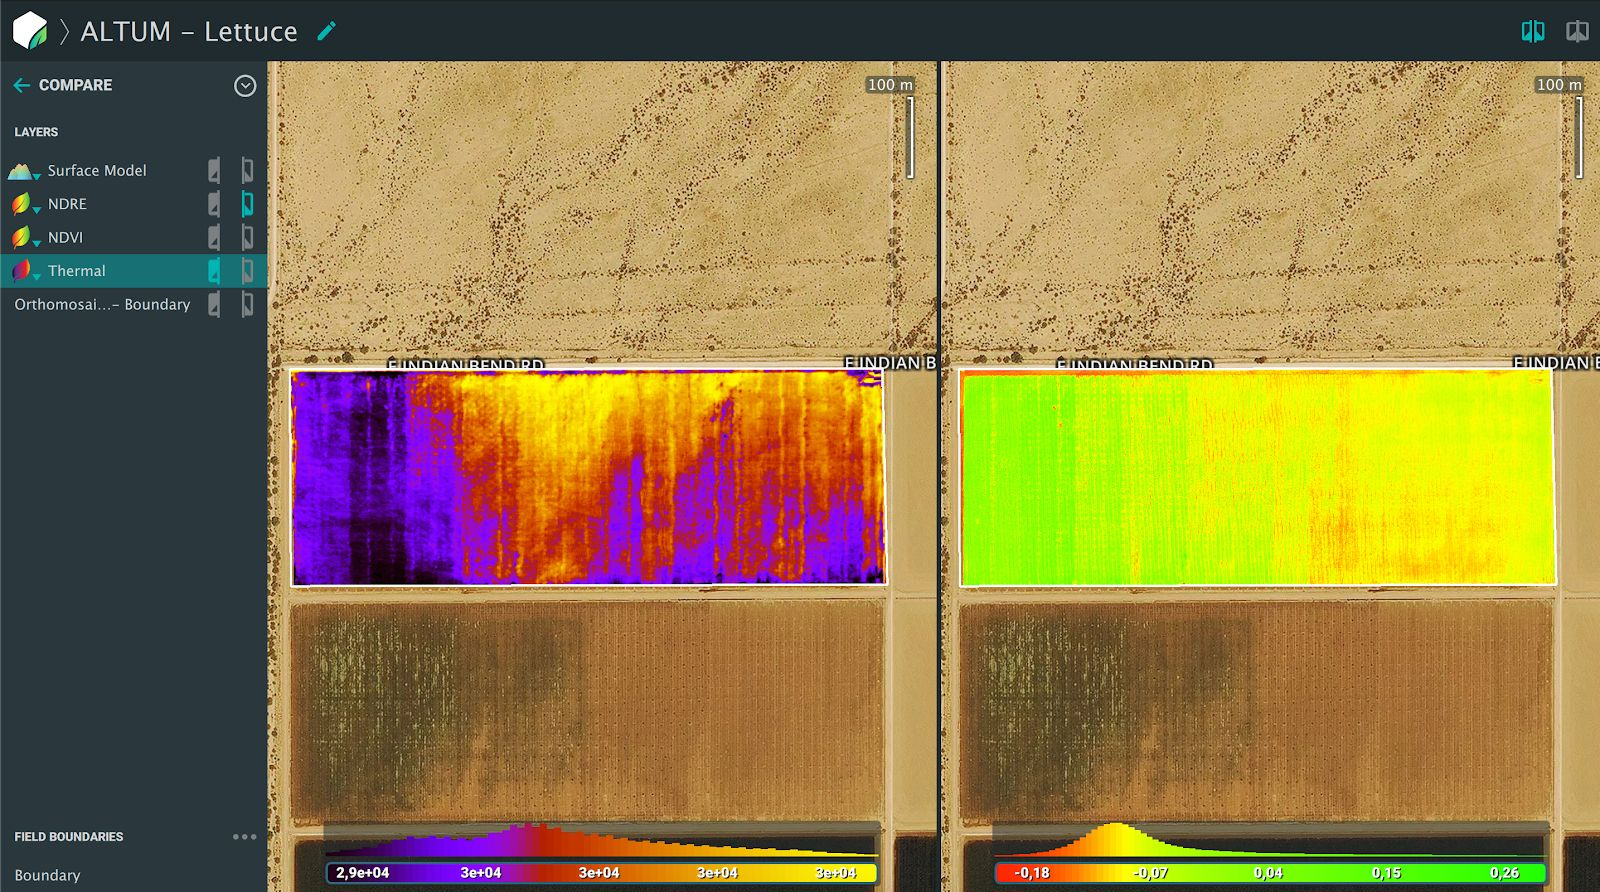 Pix4Dfields webinar thermal imagery MicaSense Altum camera